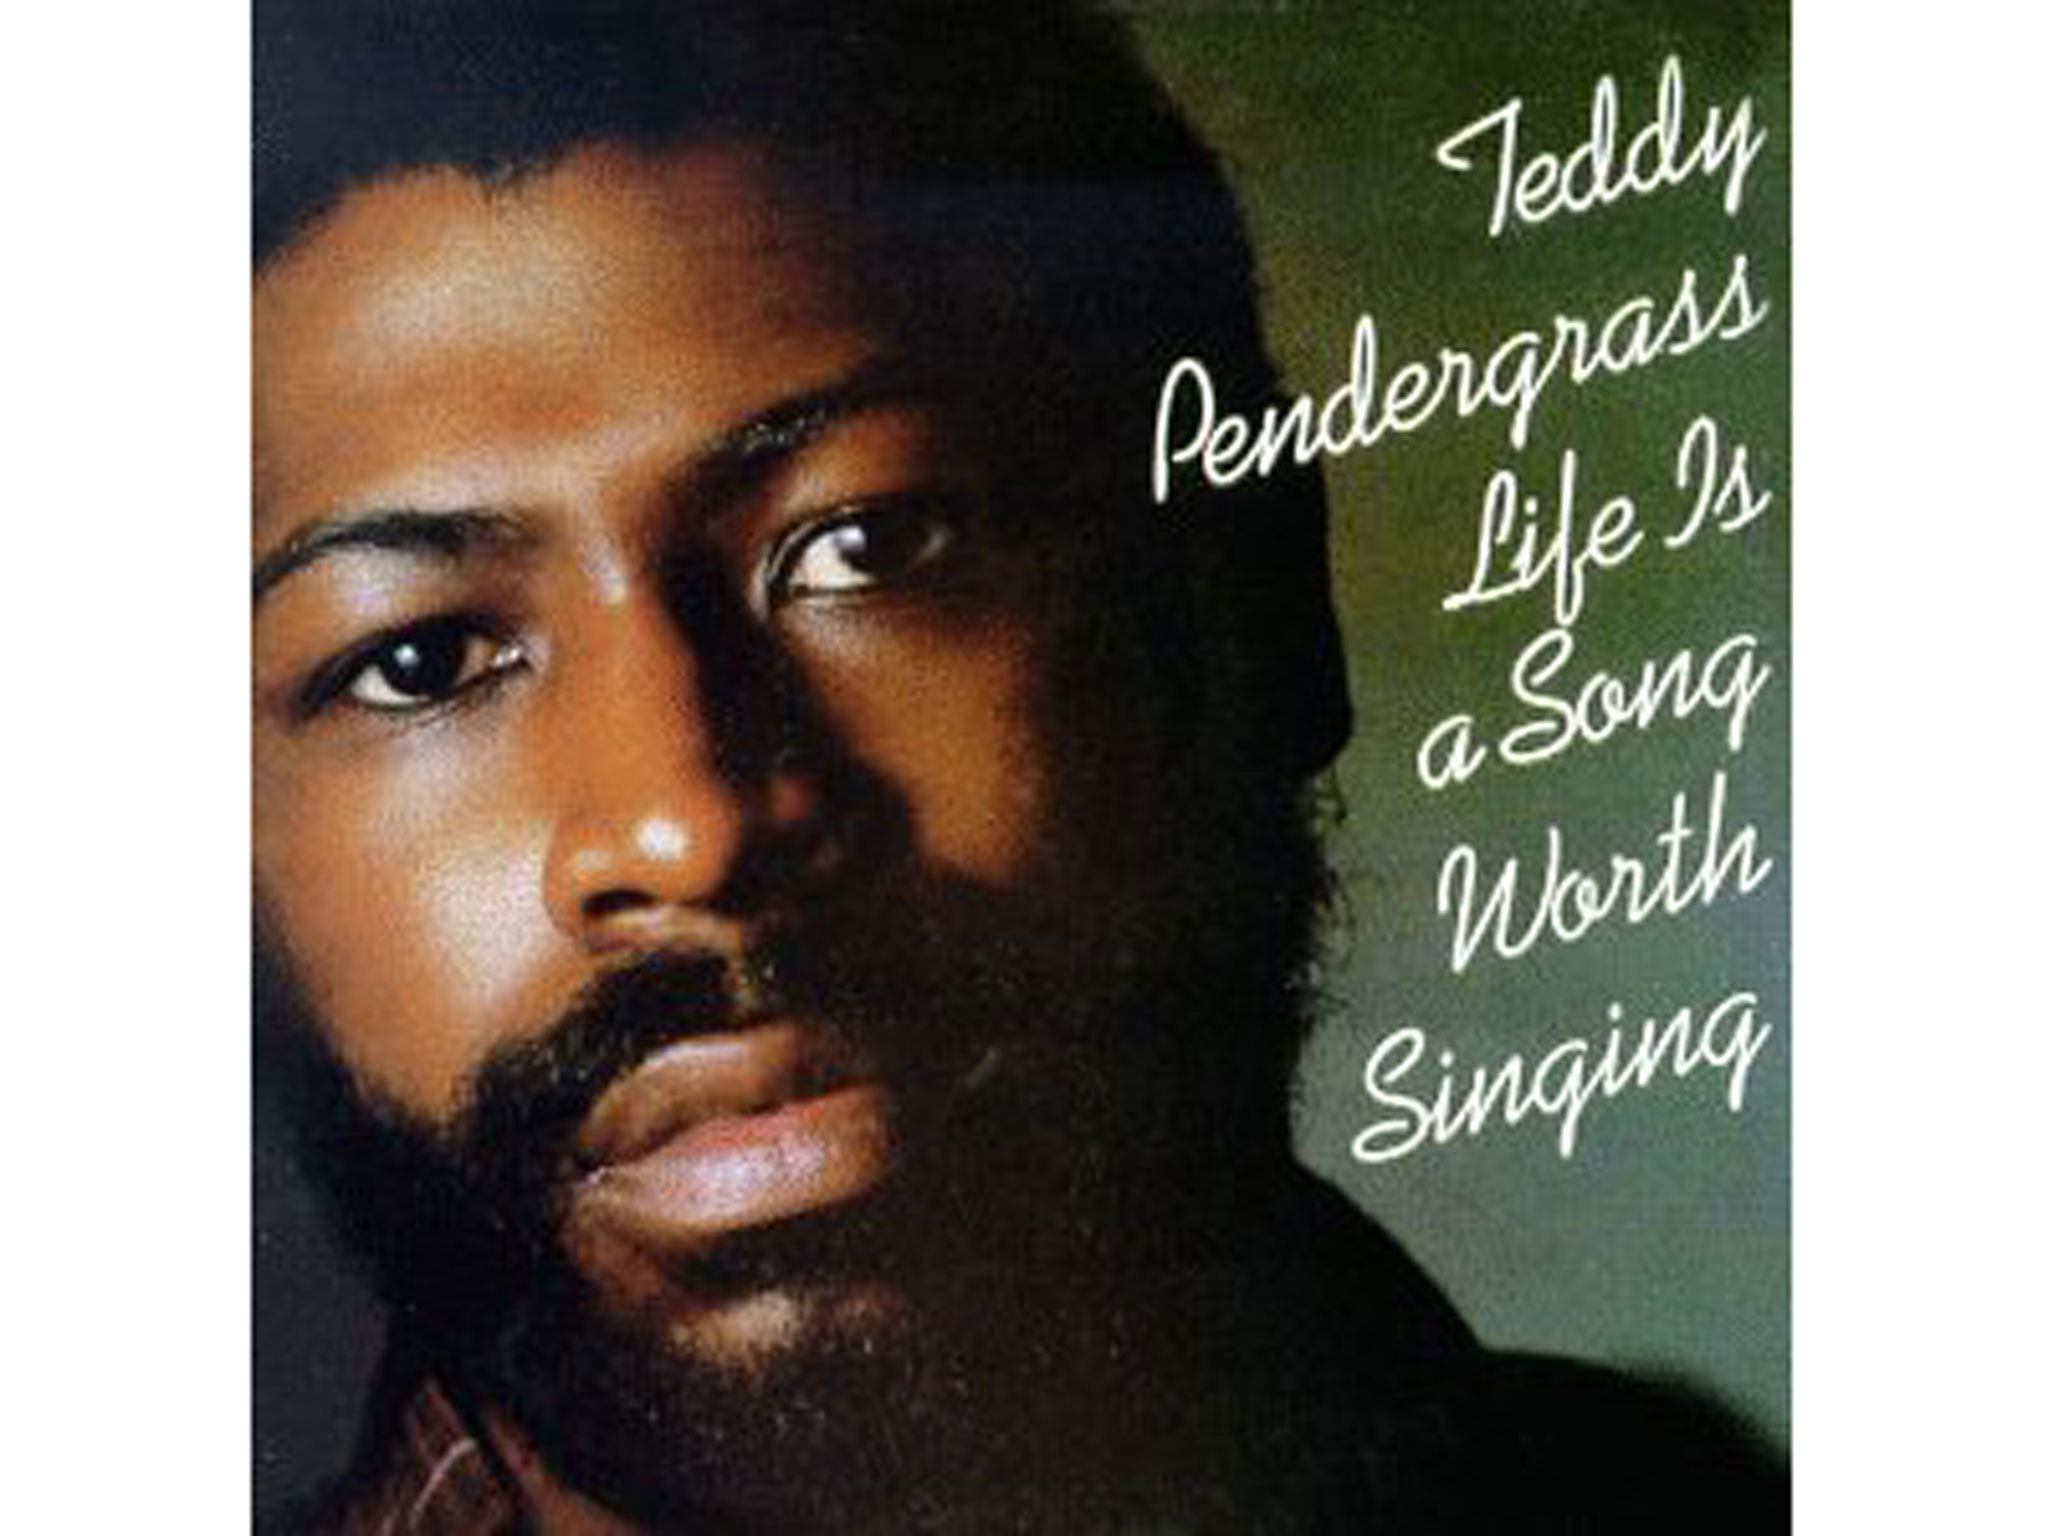 Teddy Pendergrass, best soul songs